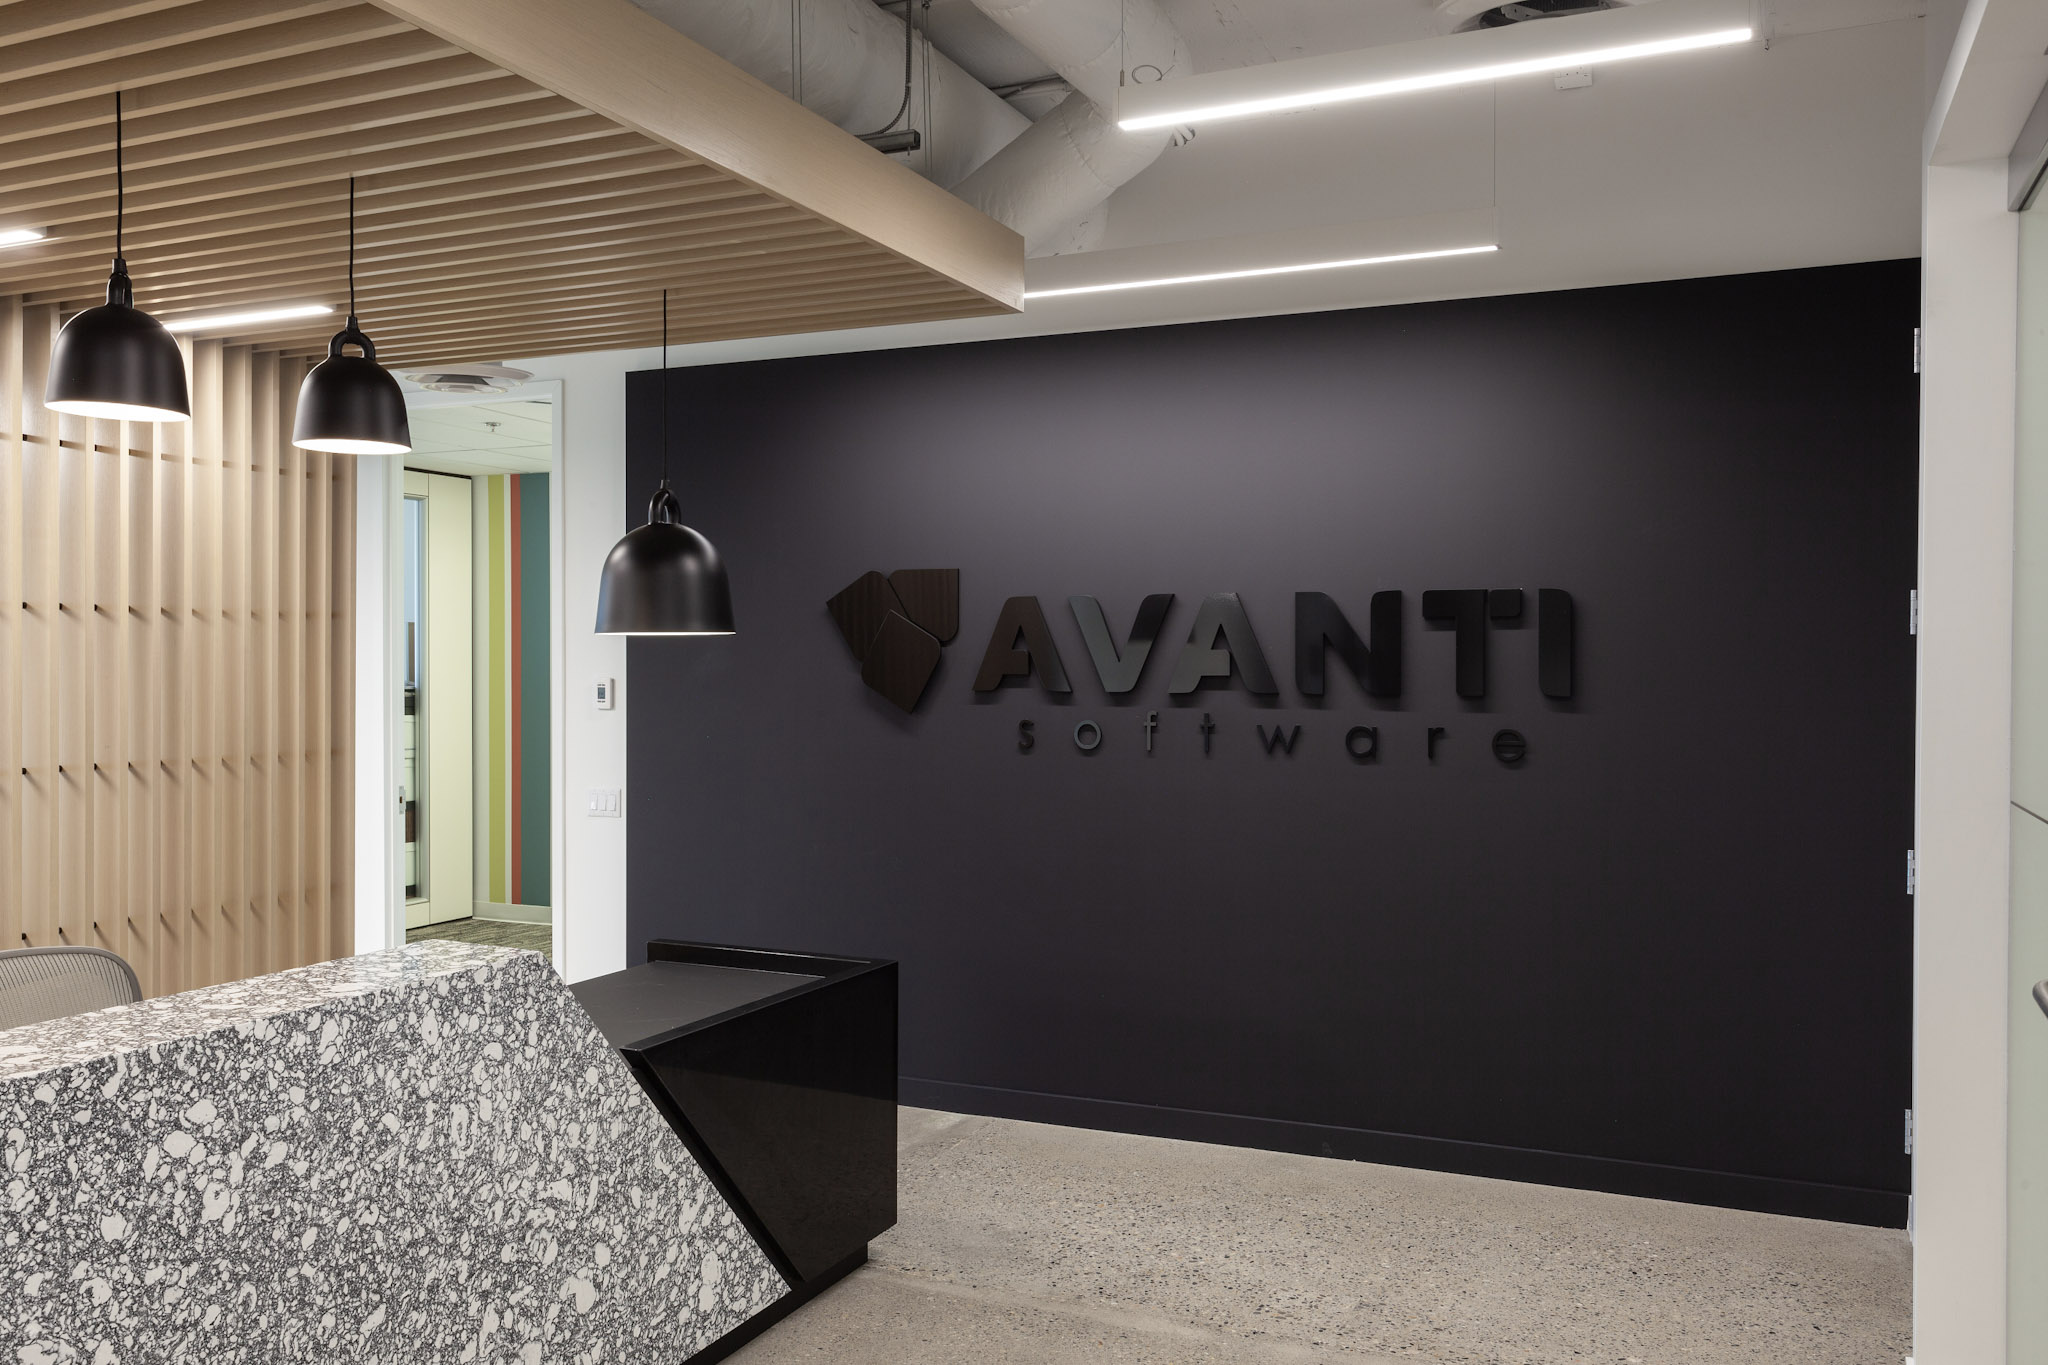 Avanti Software Westrose Interiors